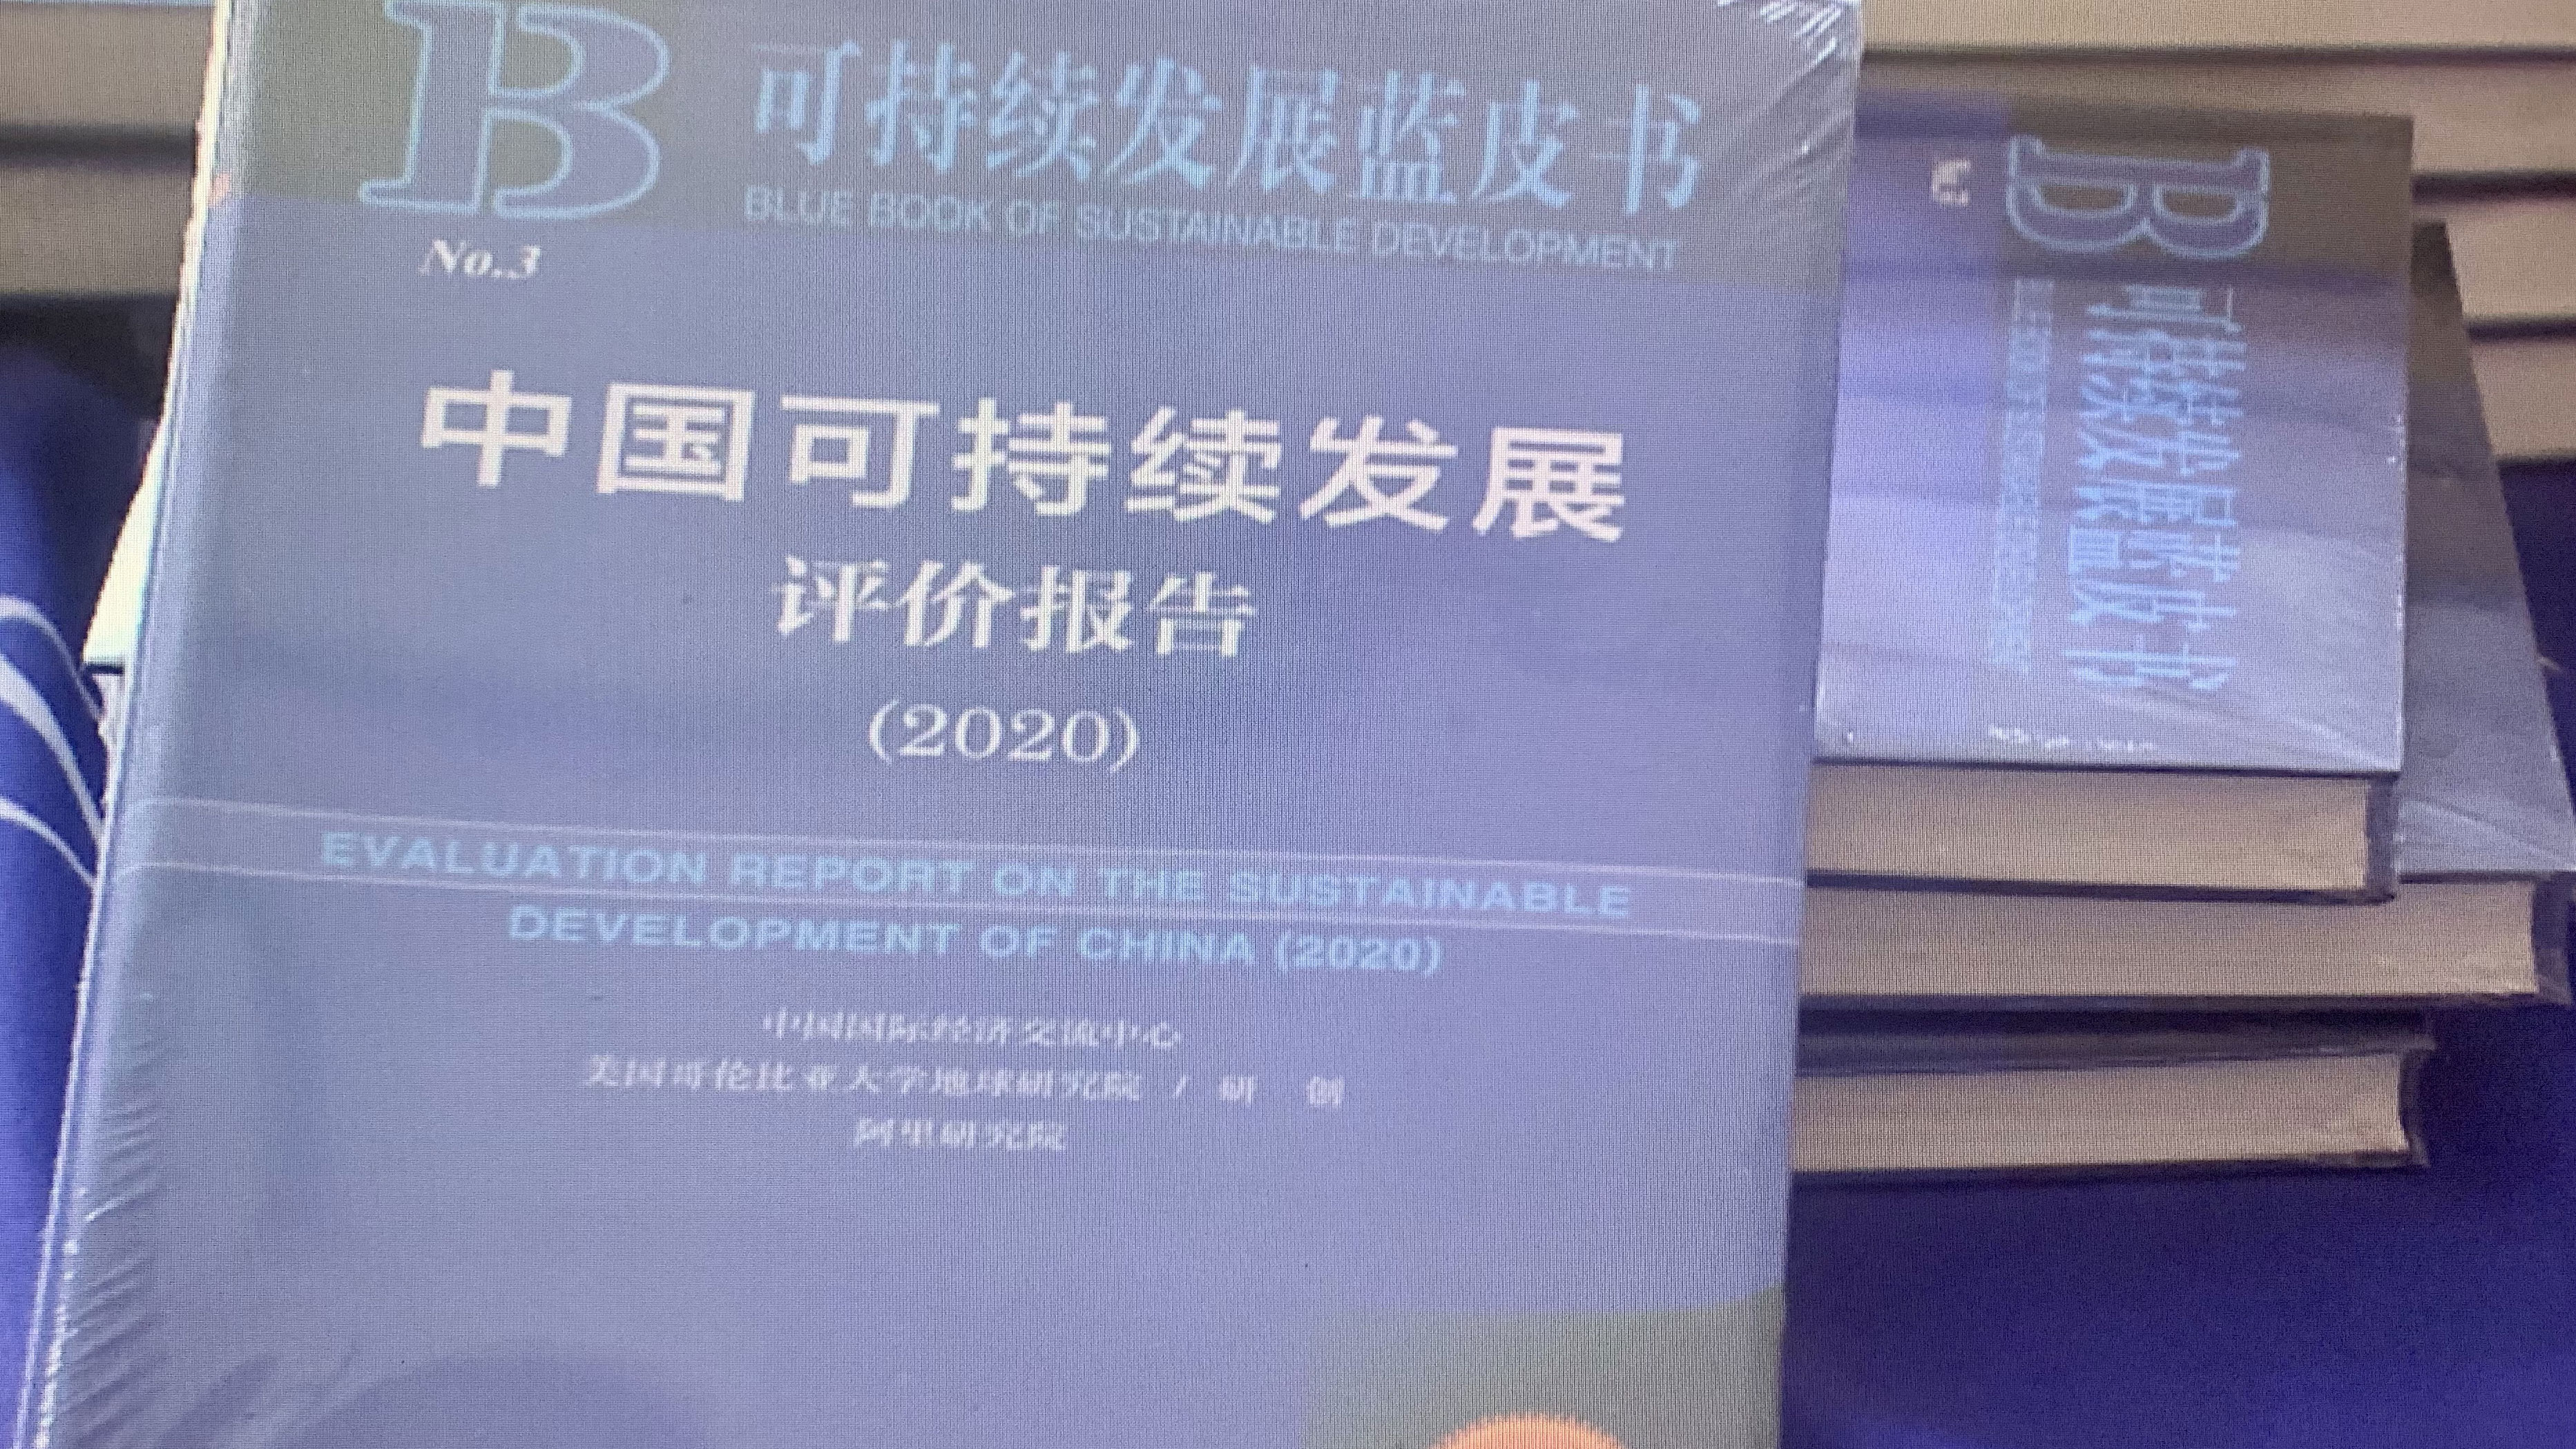 Report on China's development point to successes and challenges ahead